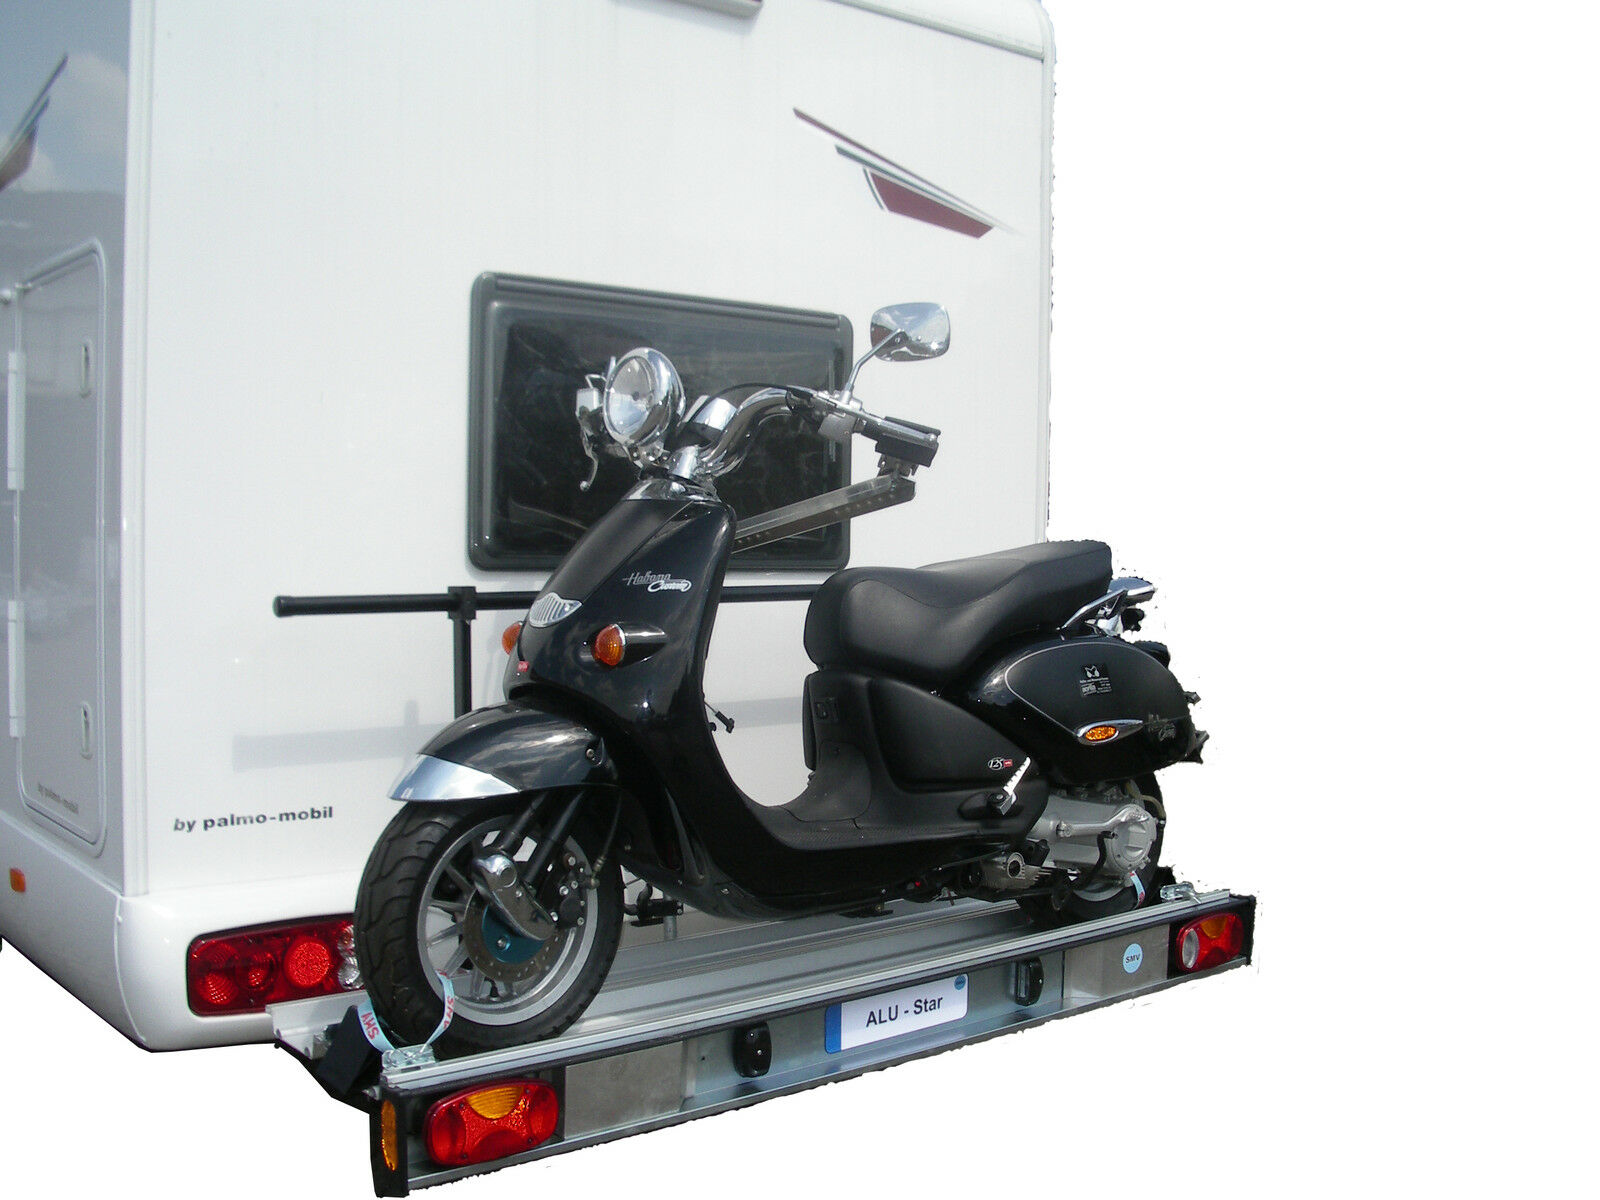 motorradtr ger rollertr ger nutzlast 150kg fiat ducato. Black Bedroom Furniture Sets. Home Design Ideas